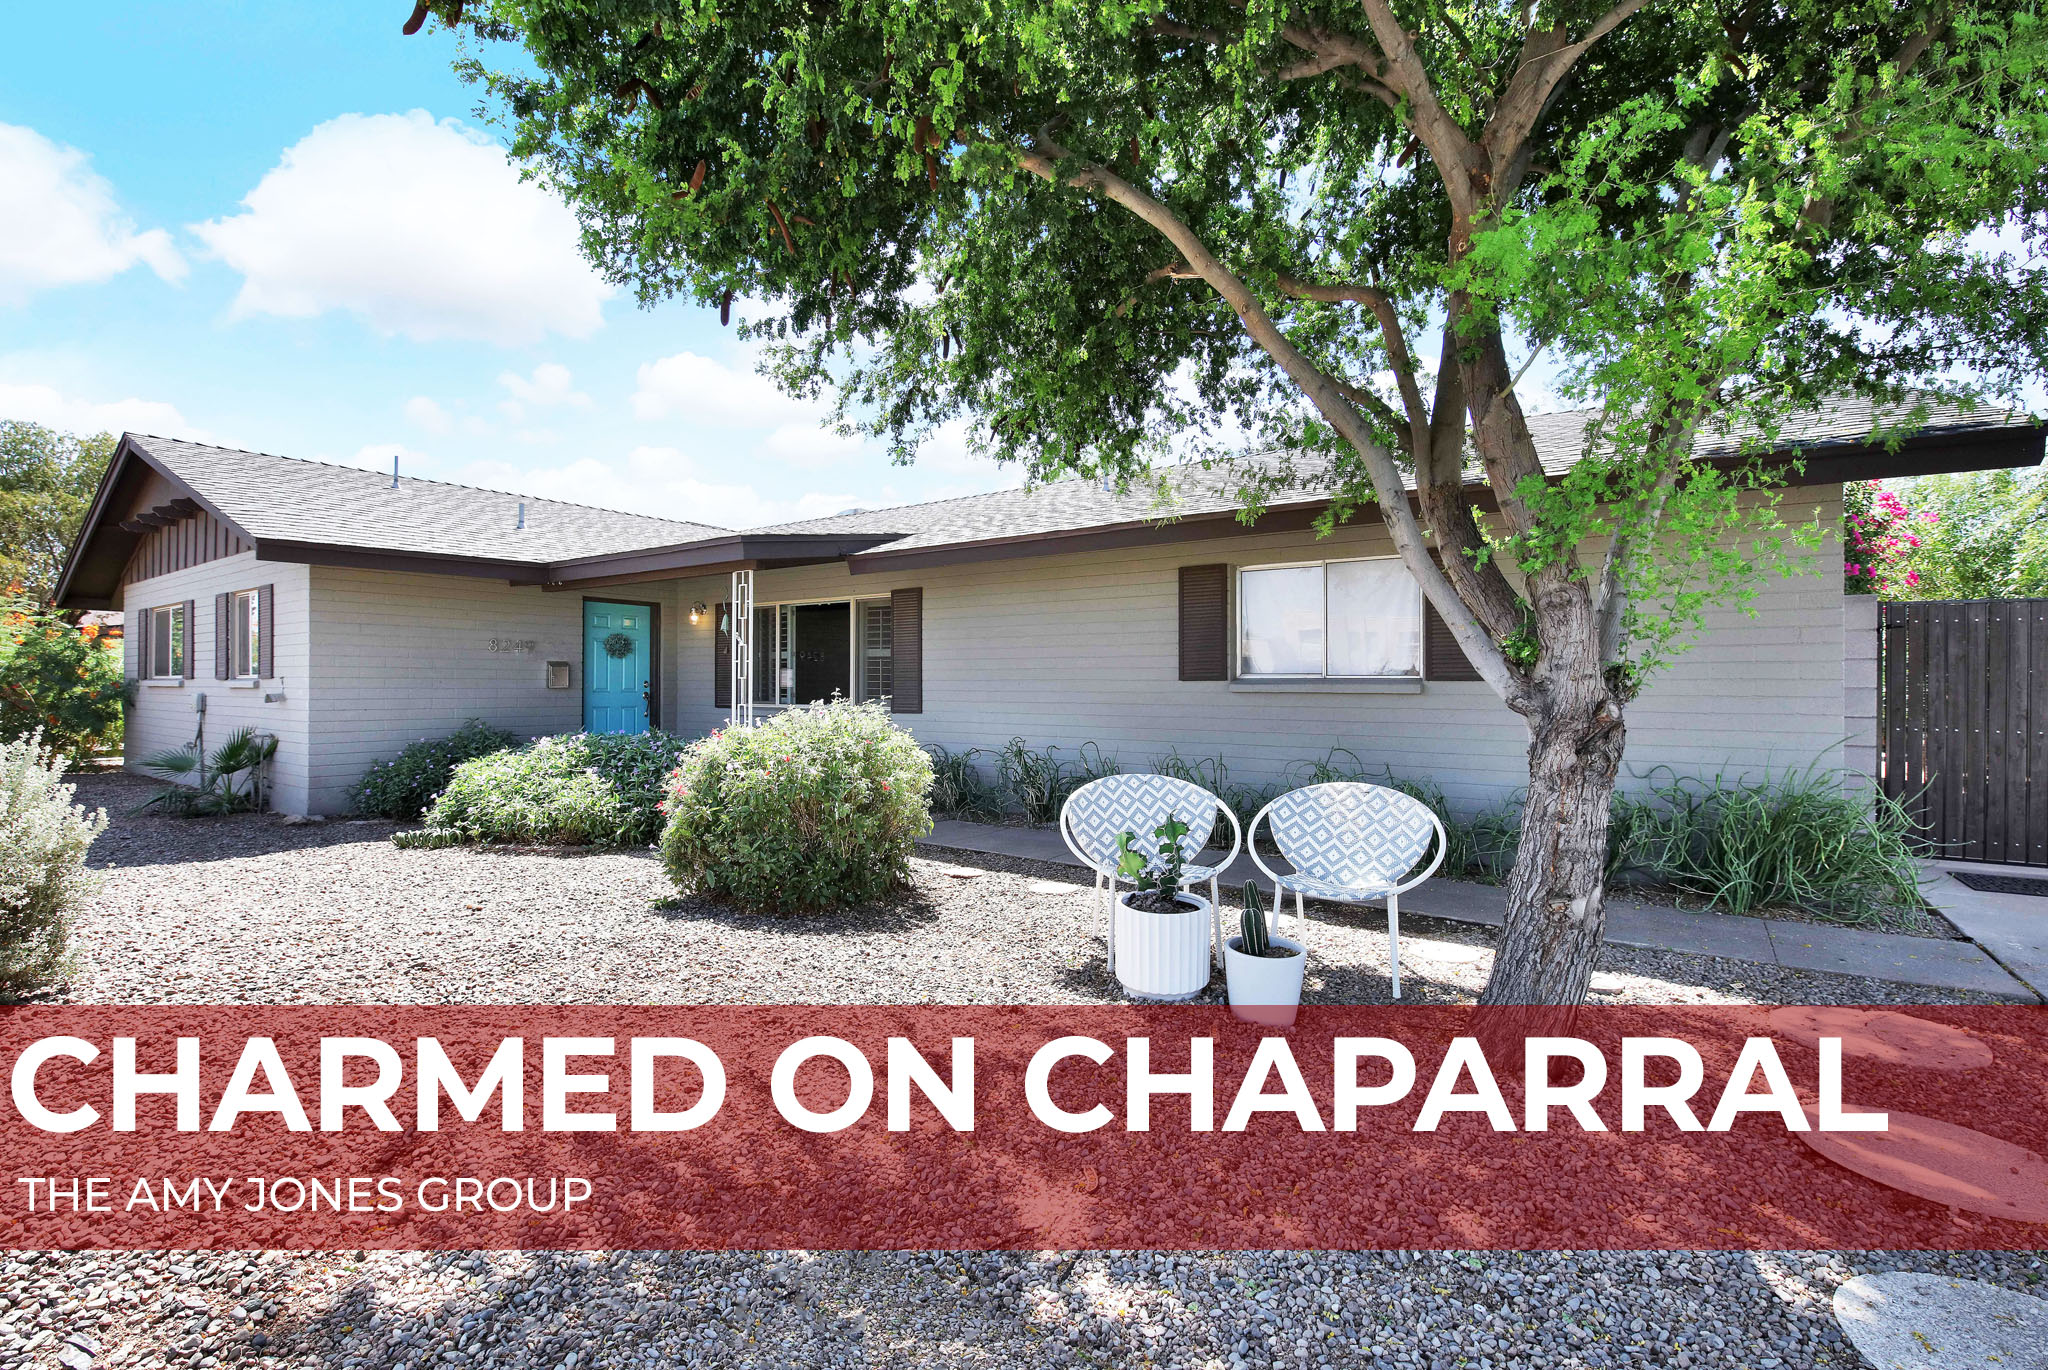 OPEN HOUSE - 8249 E Chaparral Rd - Scottsdale Country | Amy Jones Group